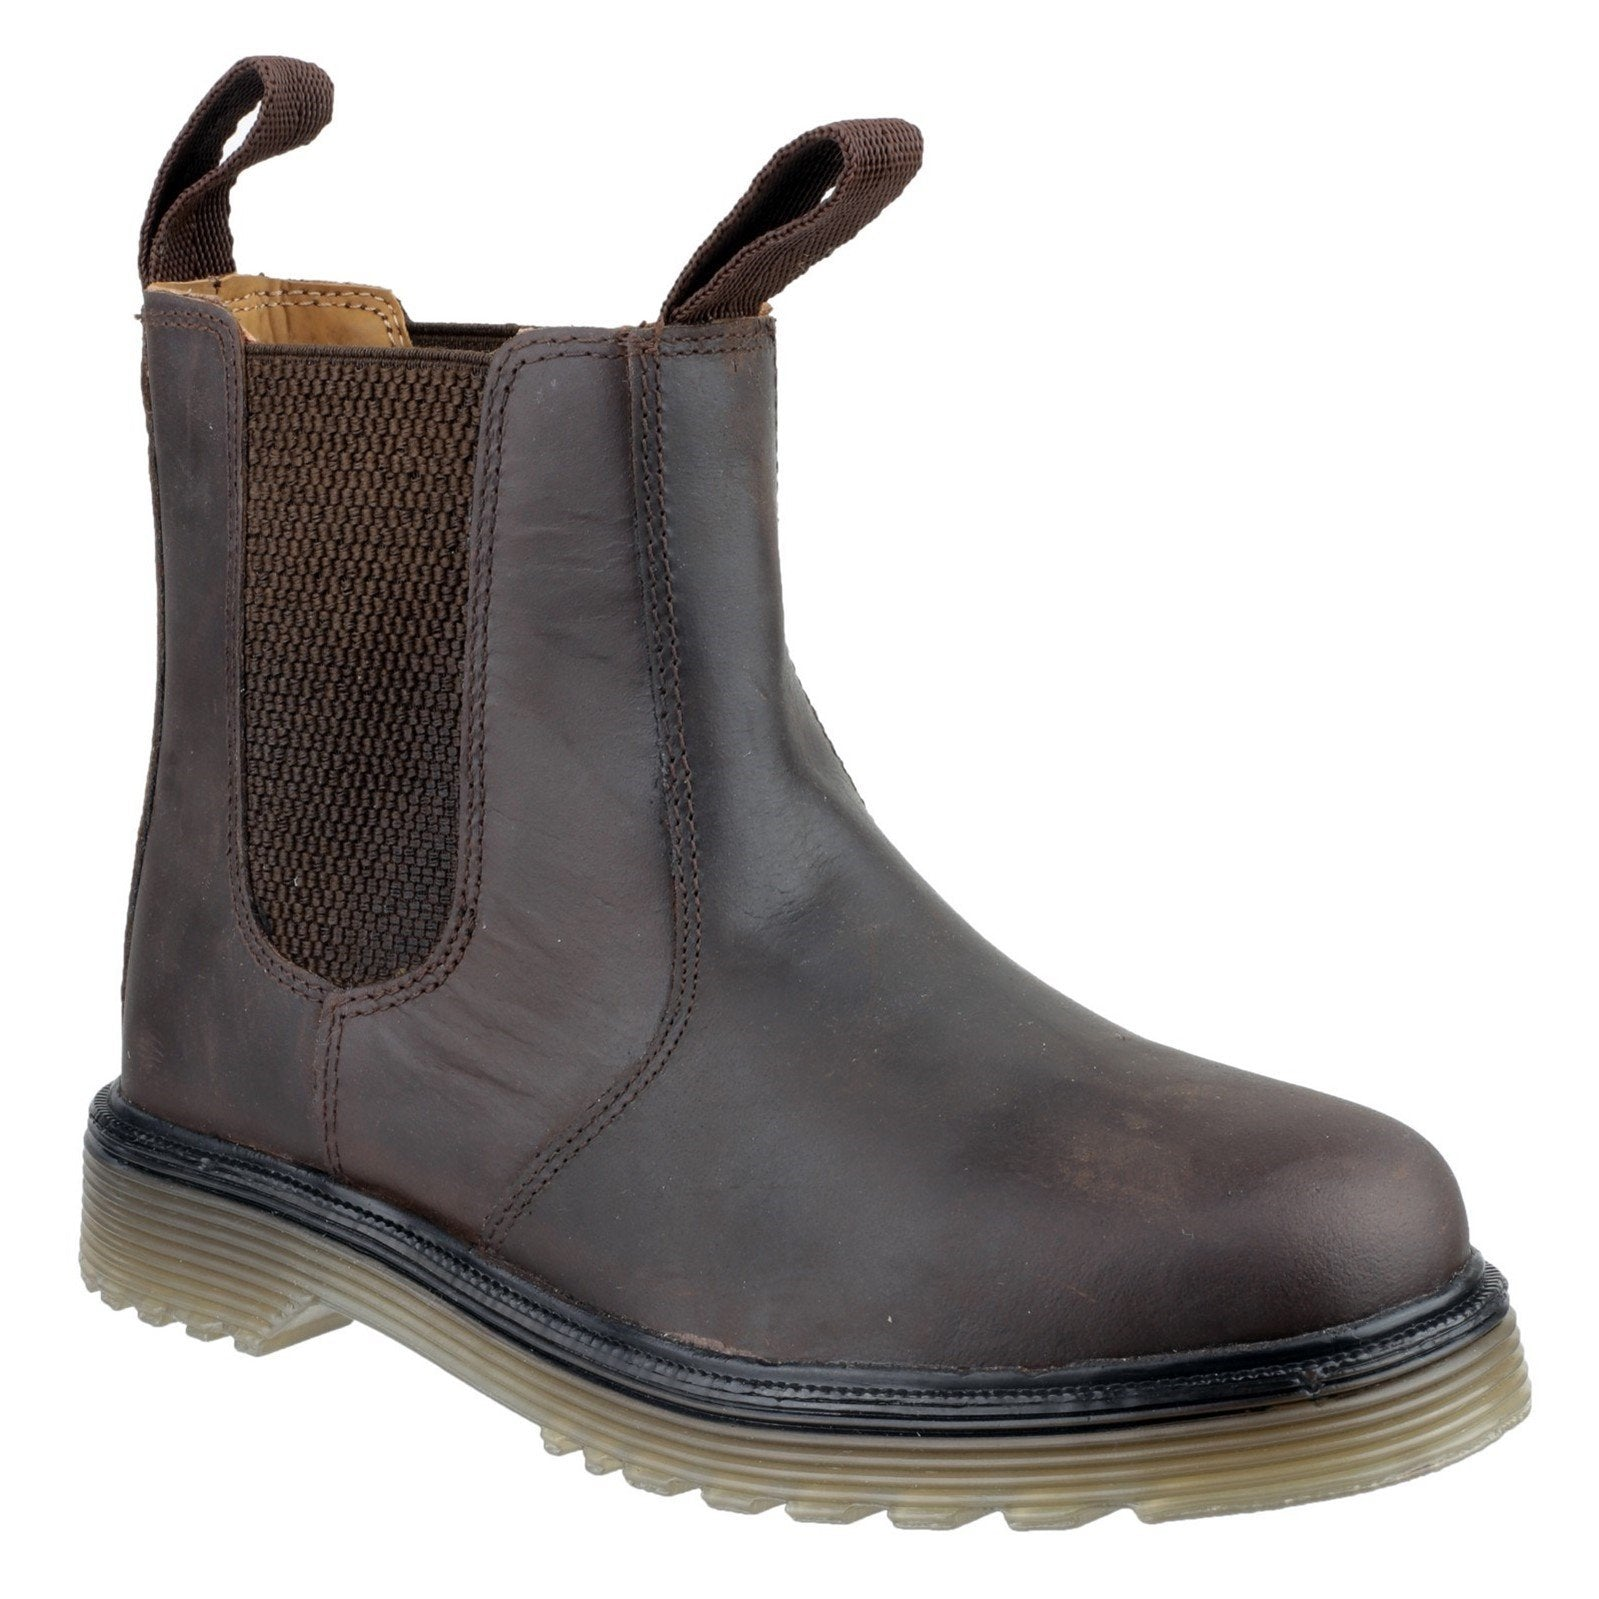 Amblers Chelmsford Dealer Boots